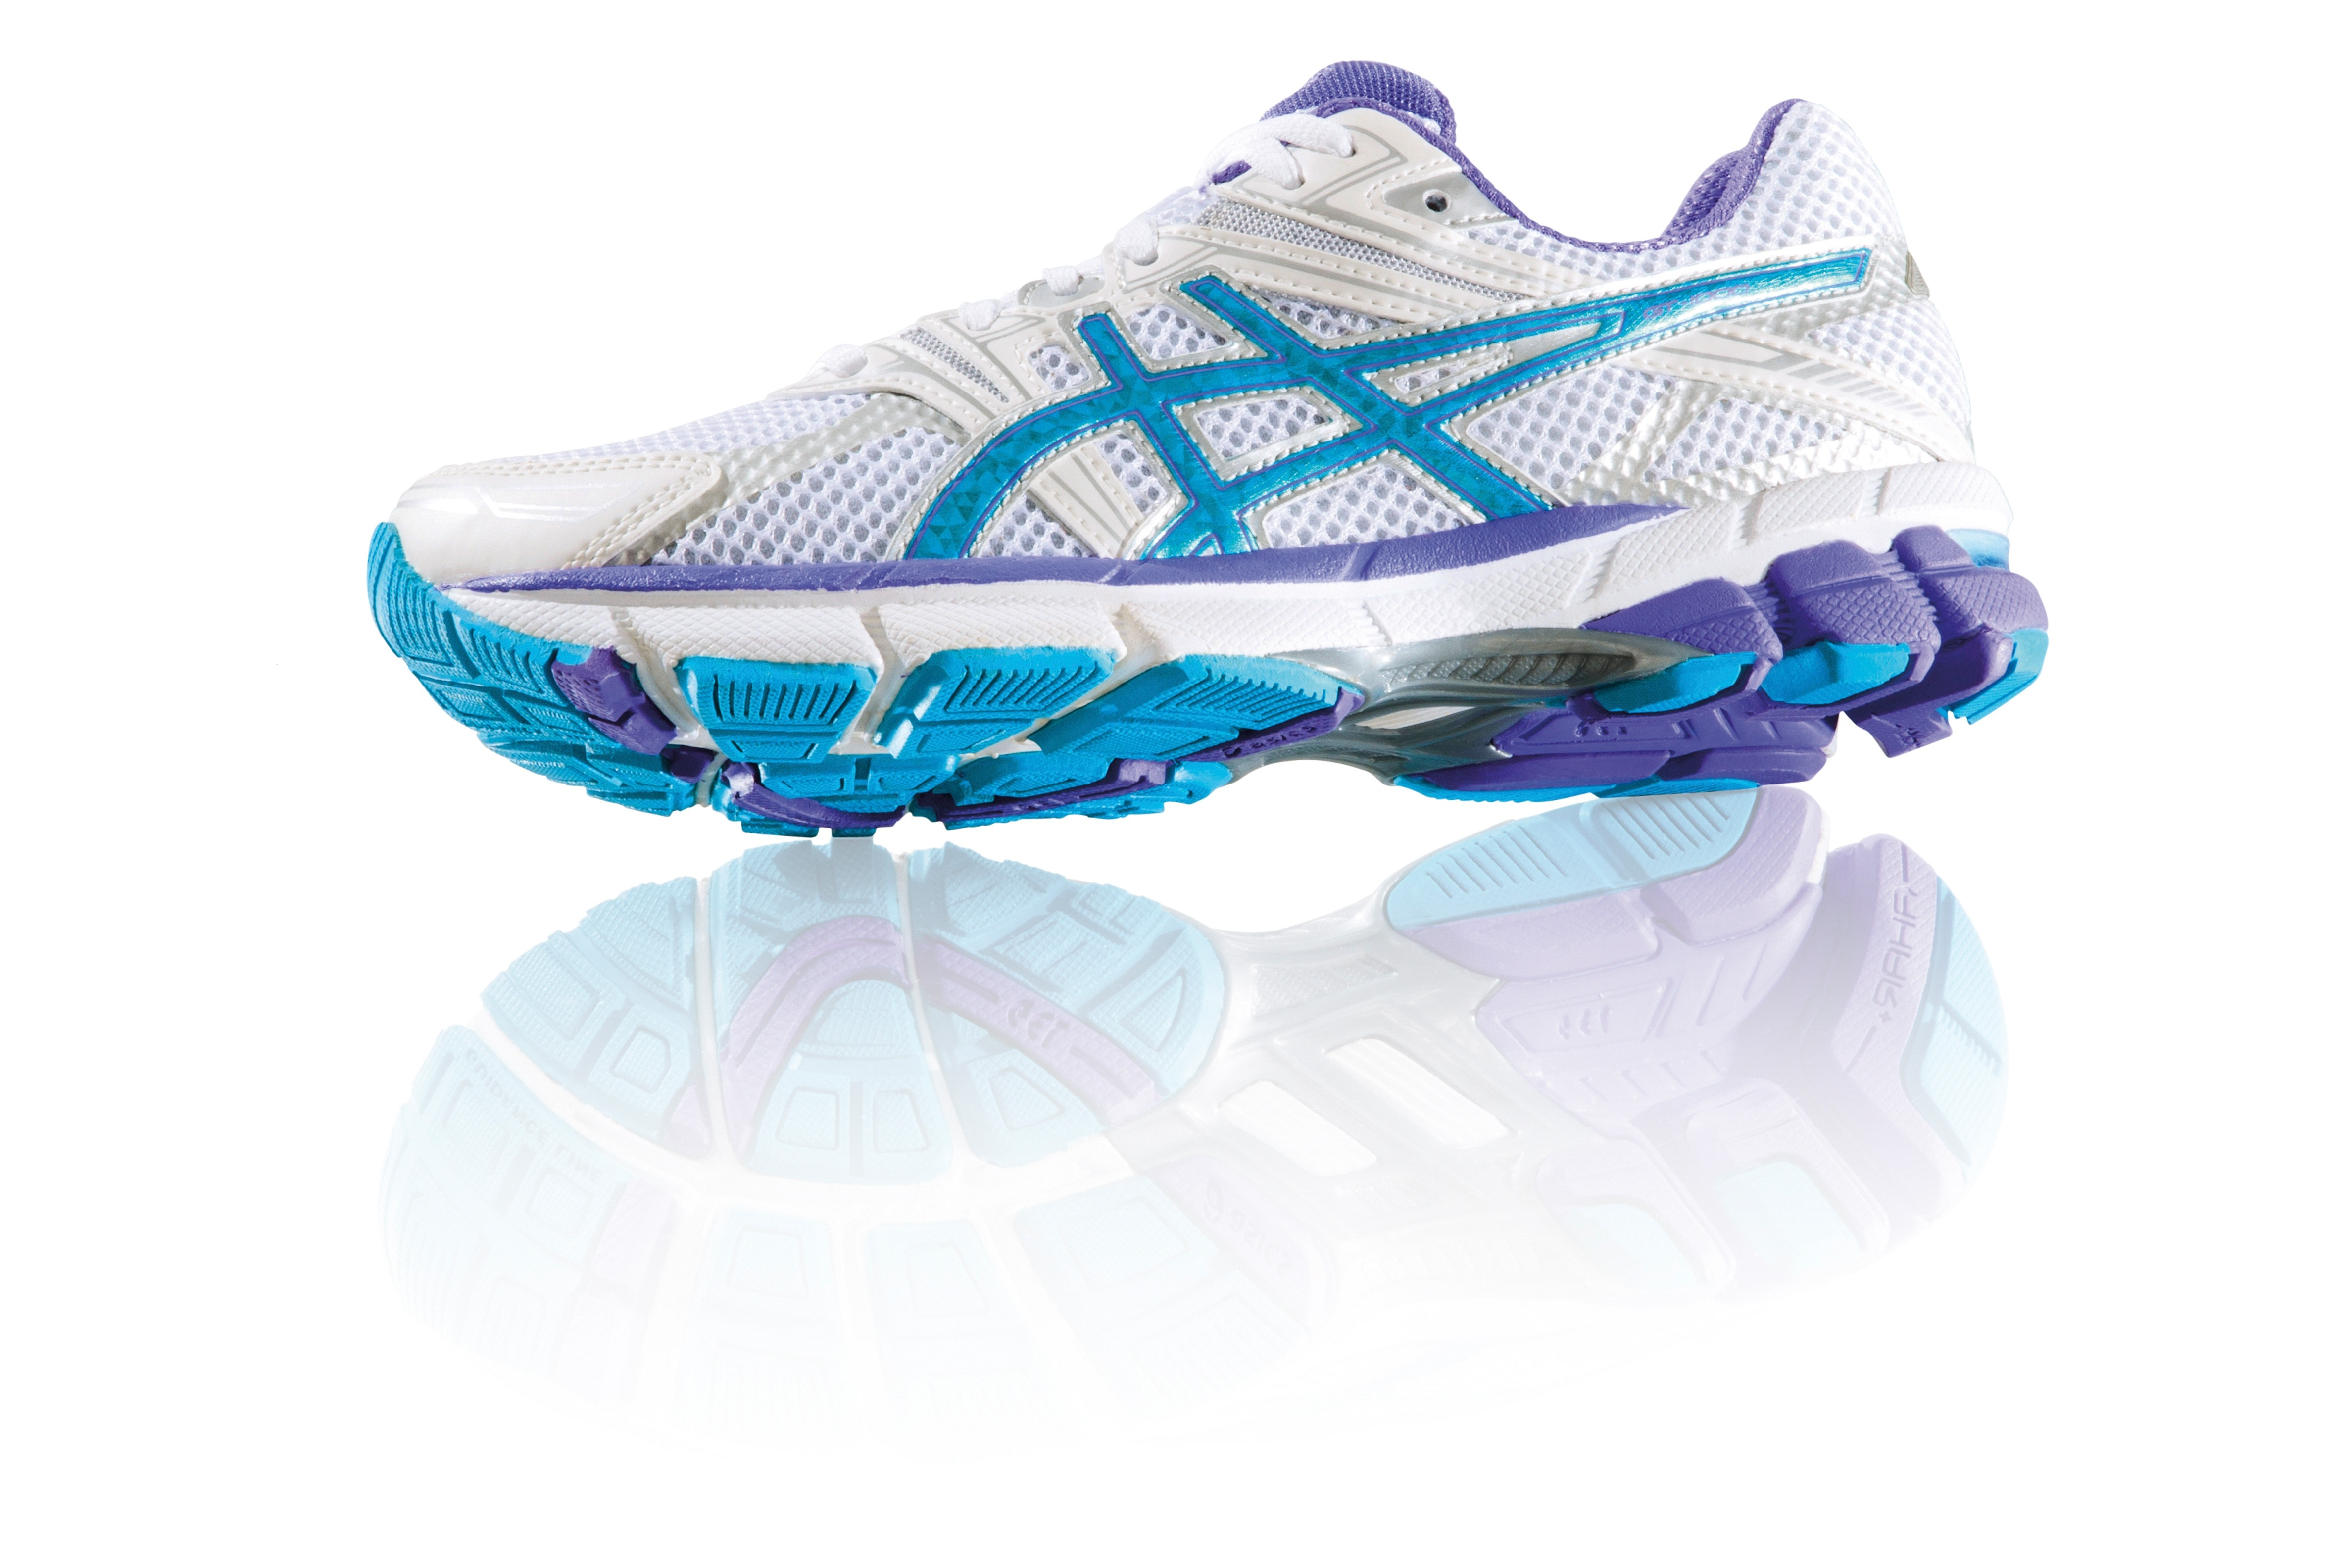 White Blue and Purple Asics Running Shoes · Free Stock Photo be04ee46b